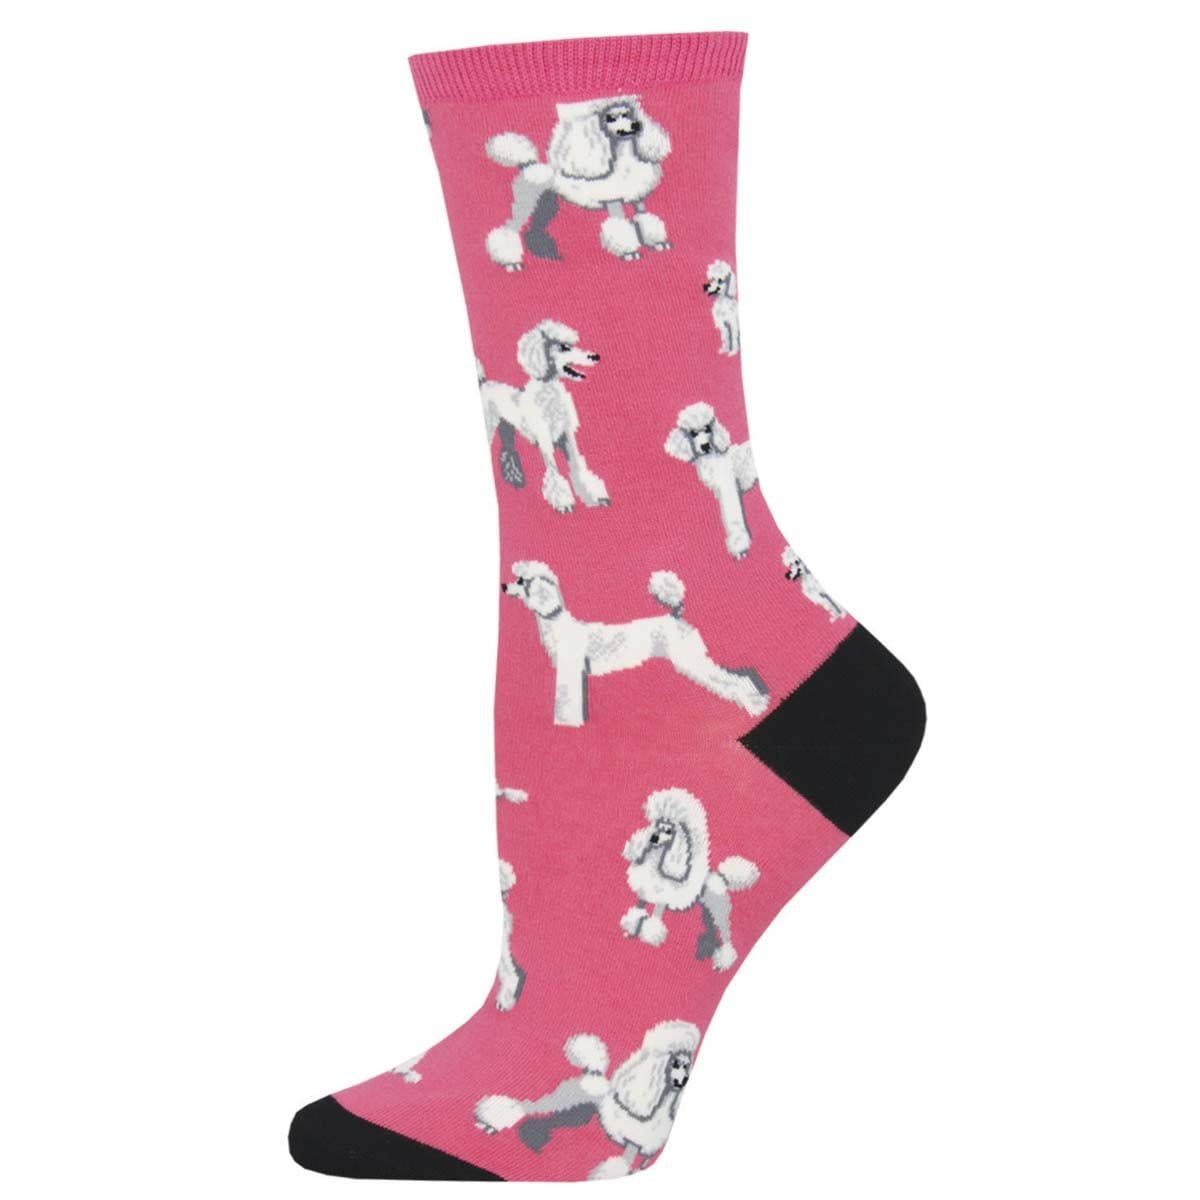 Oodles of Poodles Women's Crew Sock Pink